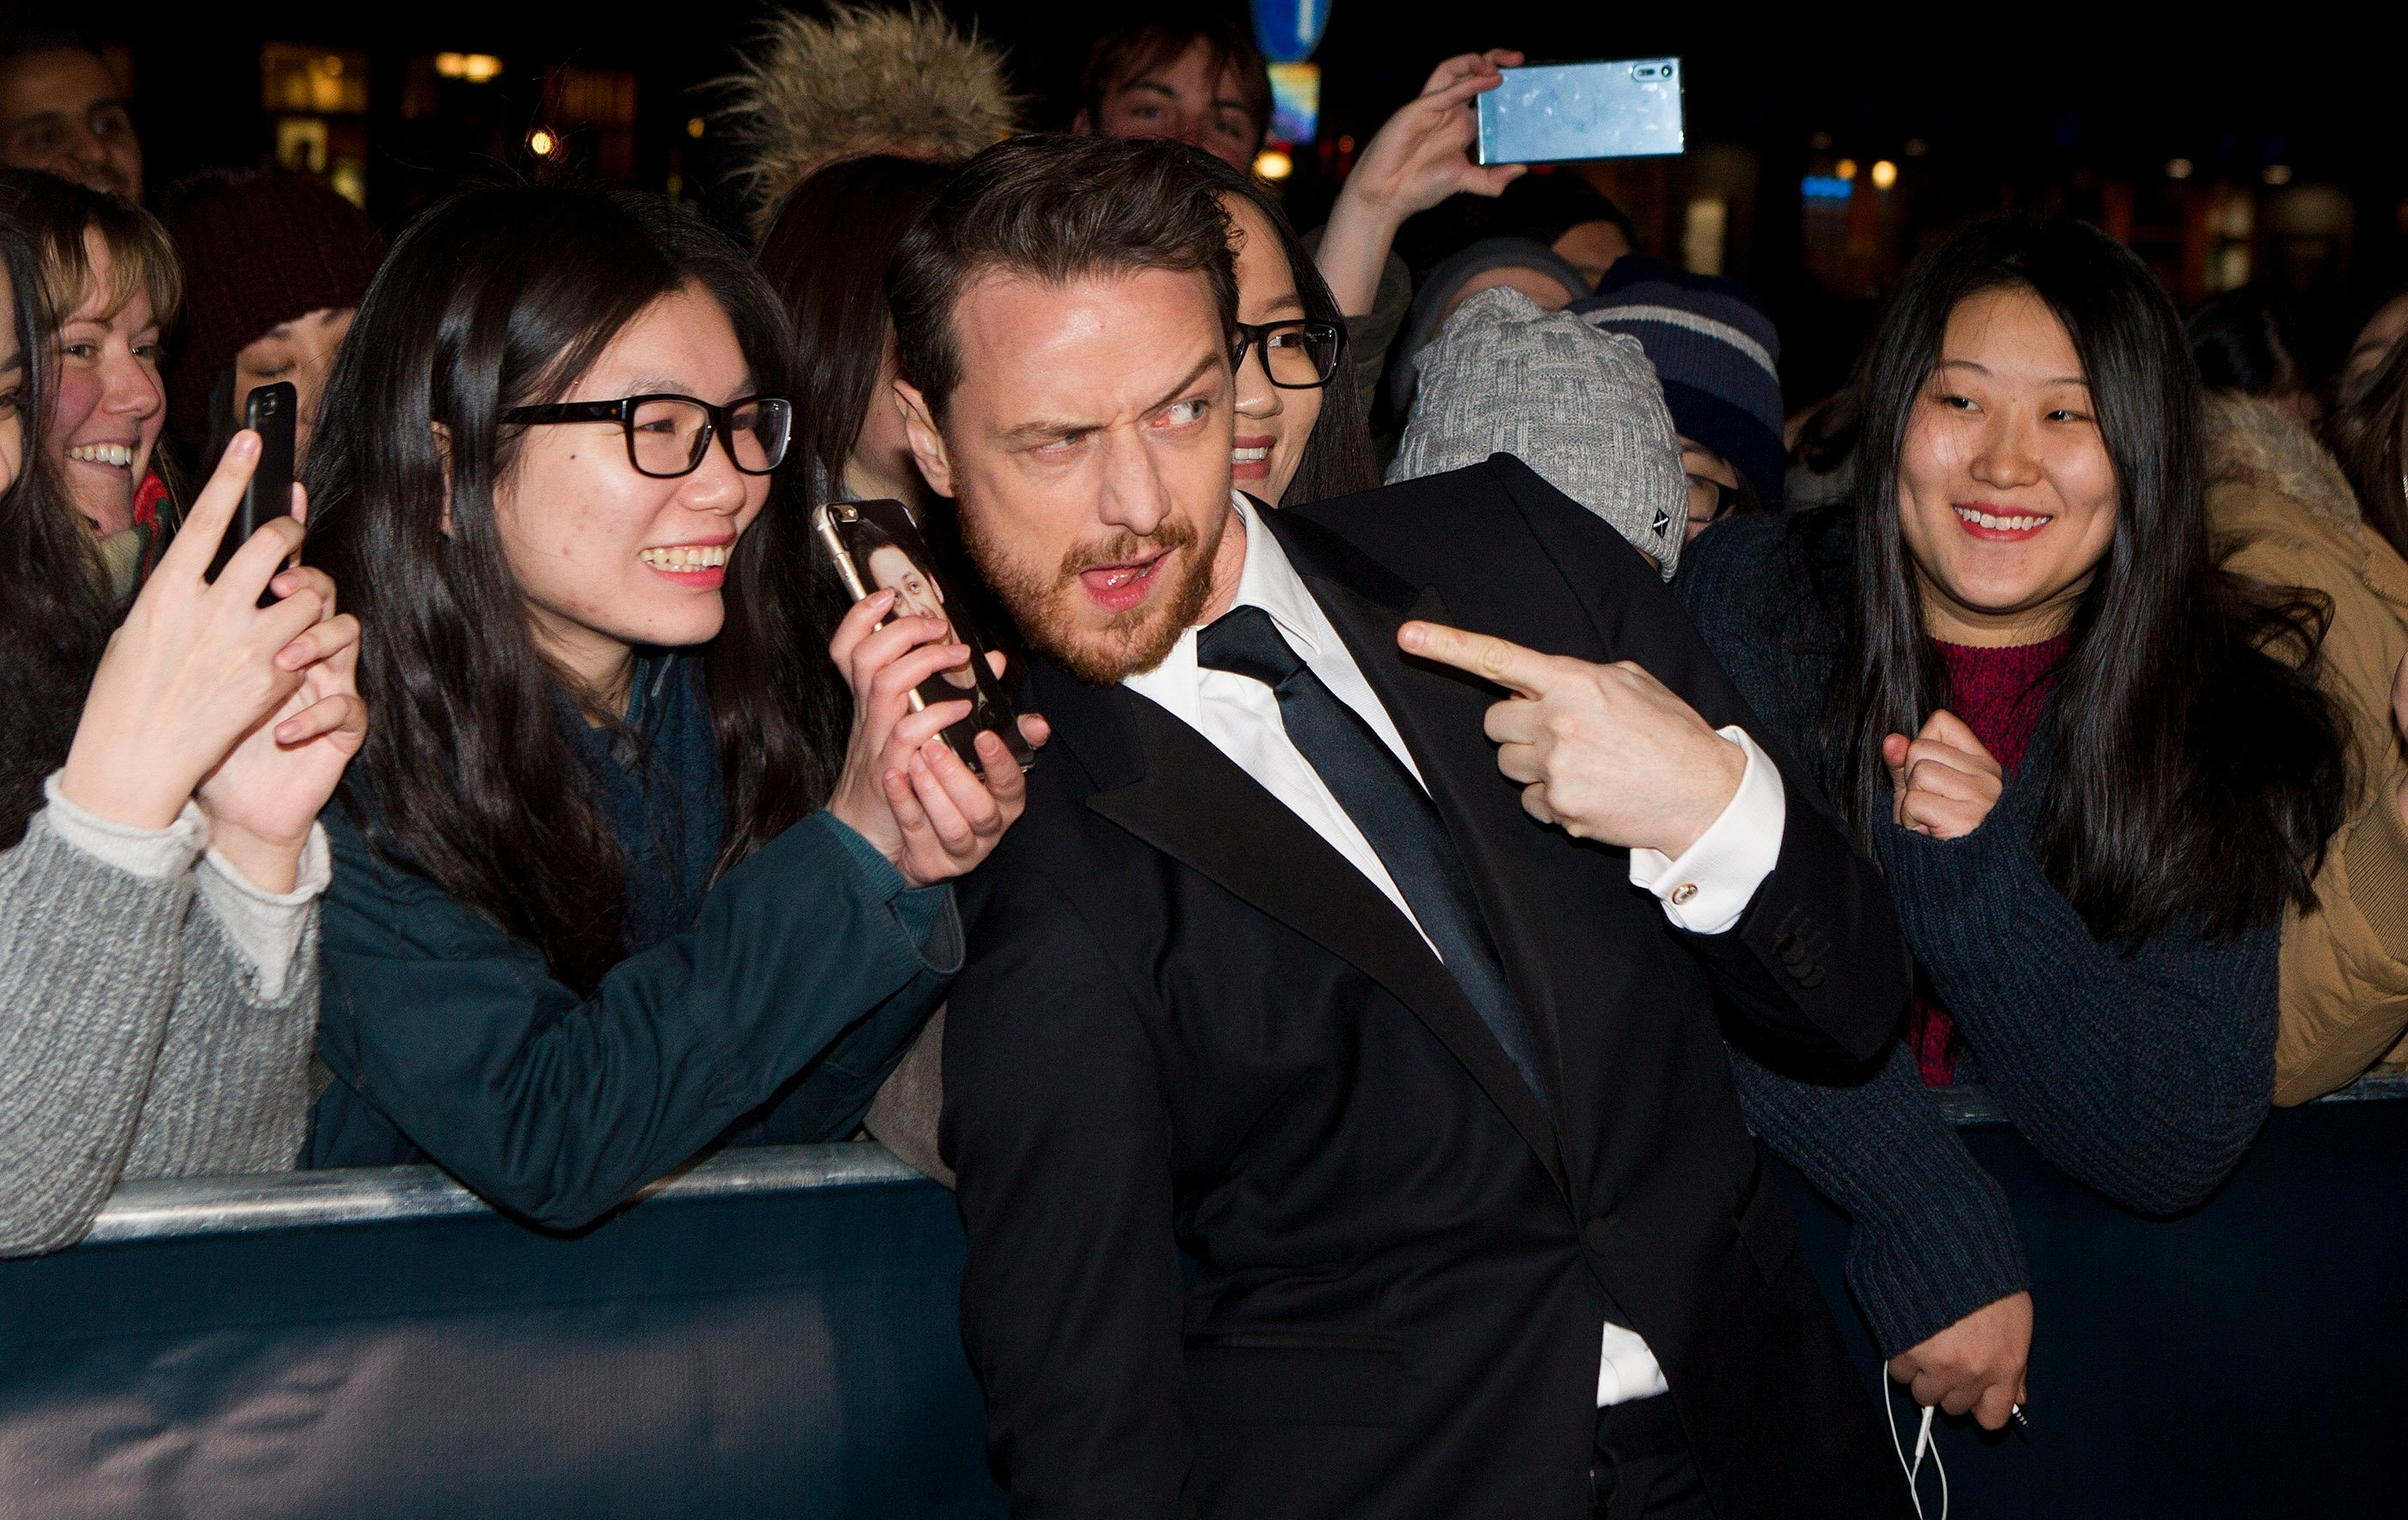 Actor James Mcavoy on the red carpet at the BAFTA Scotland Awards held at the Radisson Blu, Glasgow.